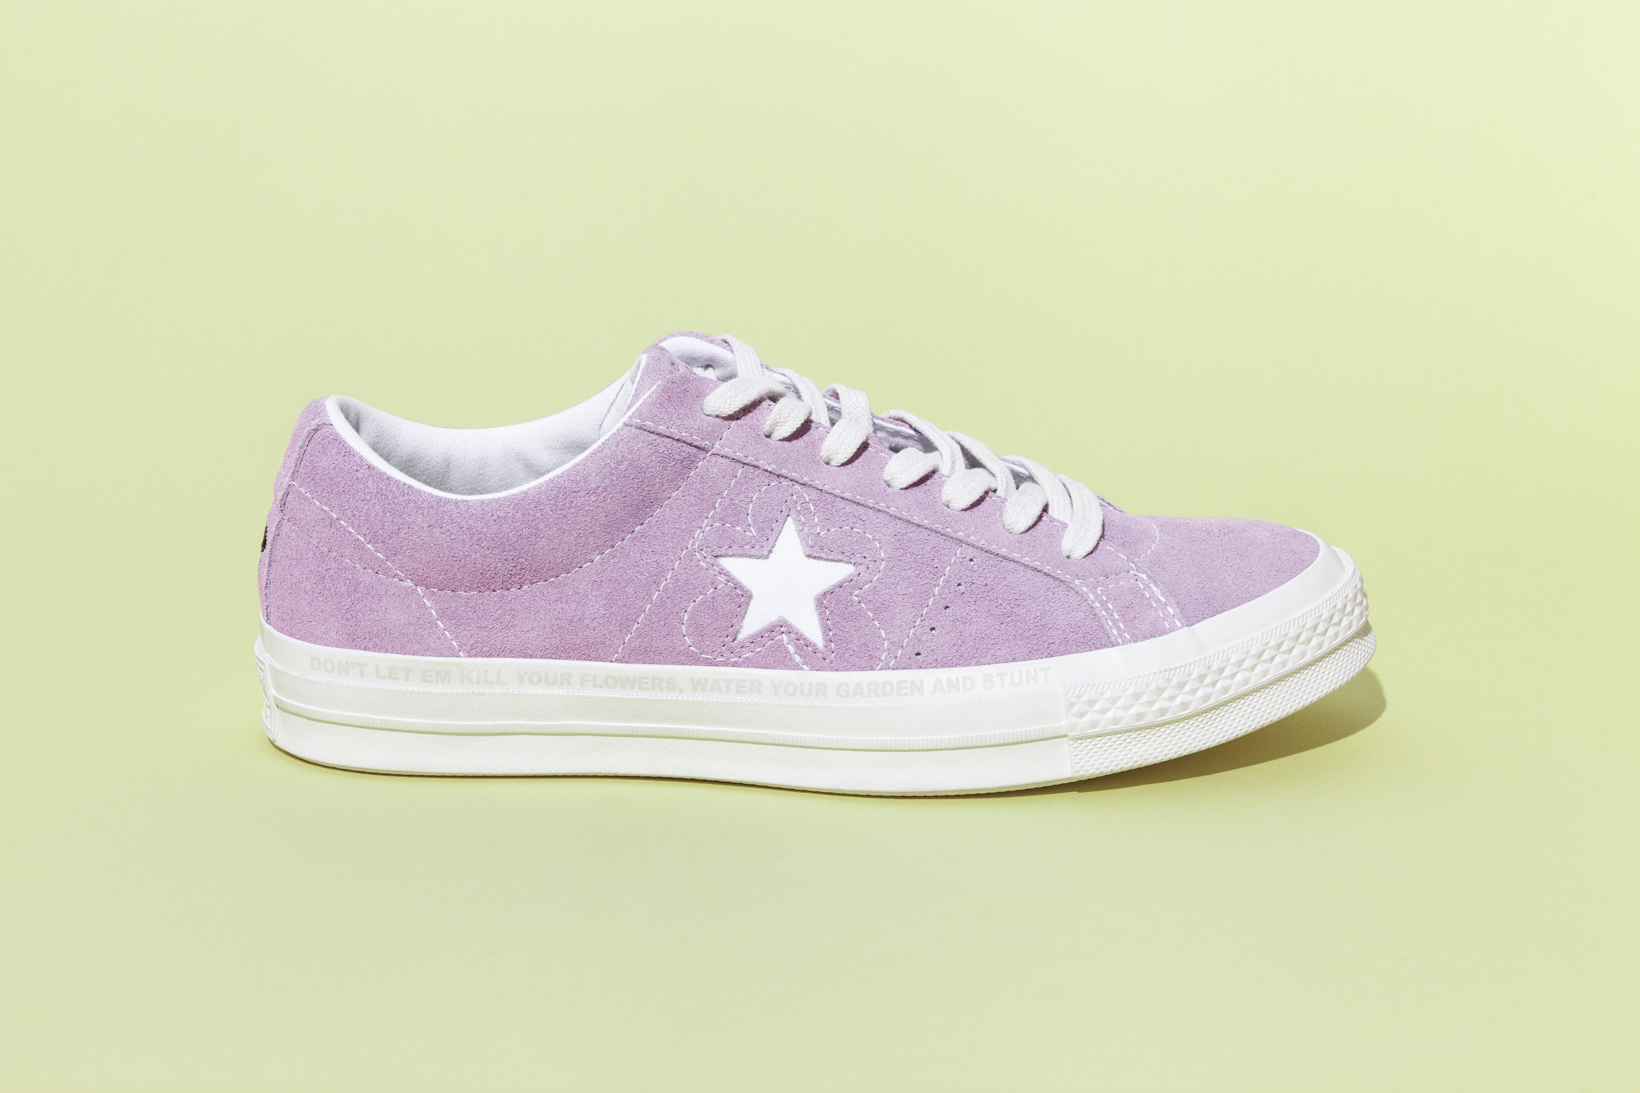 converse one star boys